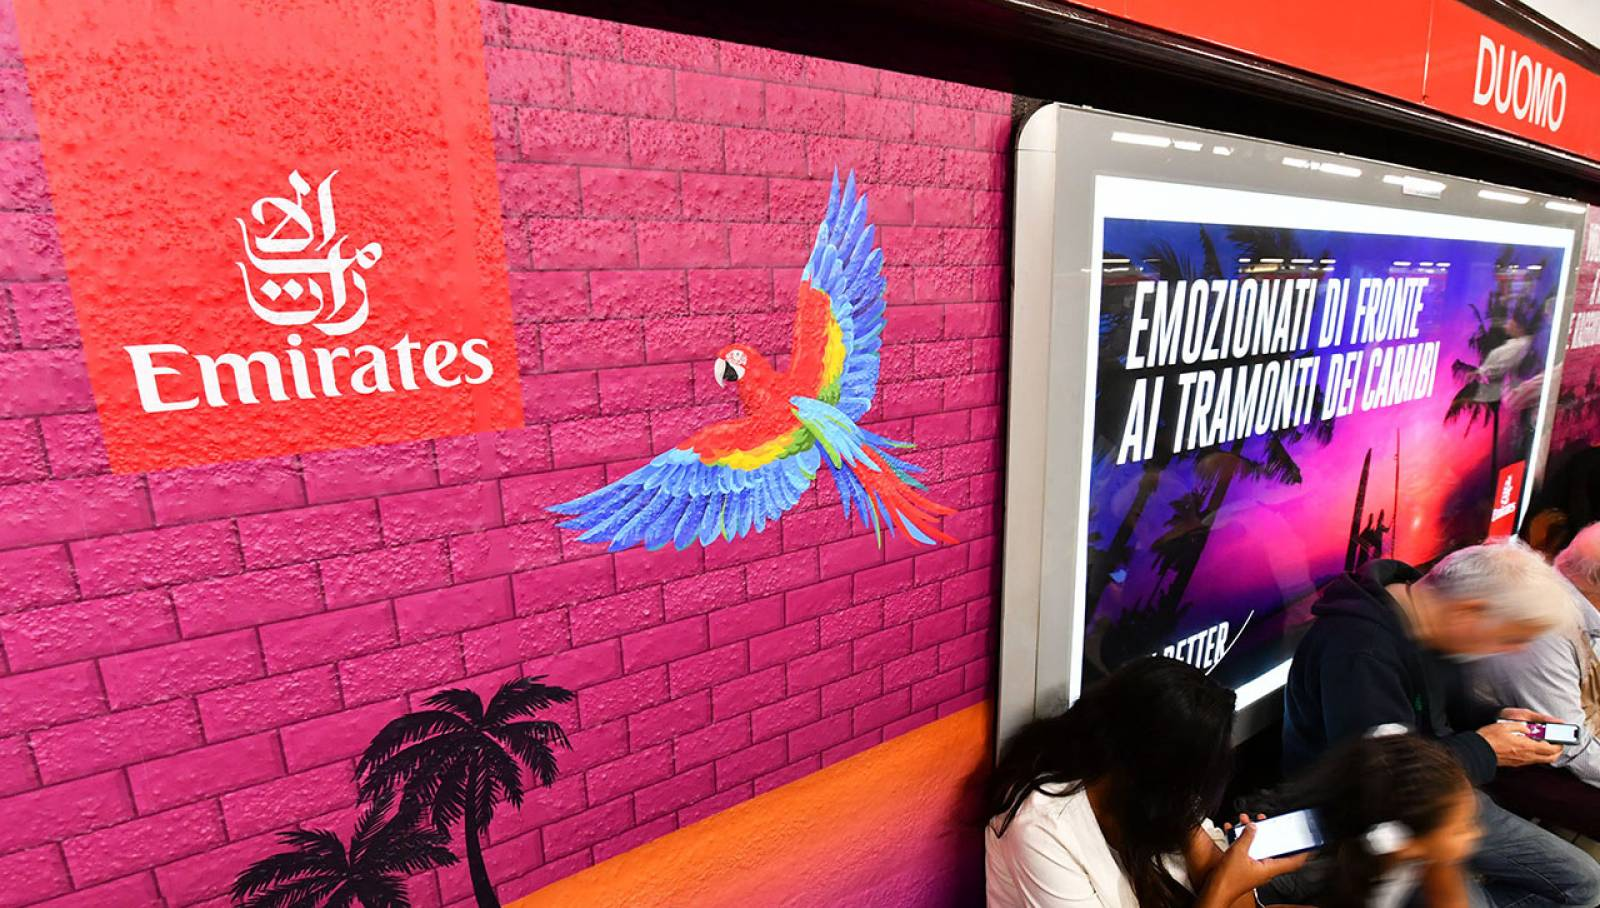 IGPDecaux Station Domination for Emirates in Milan